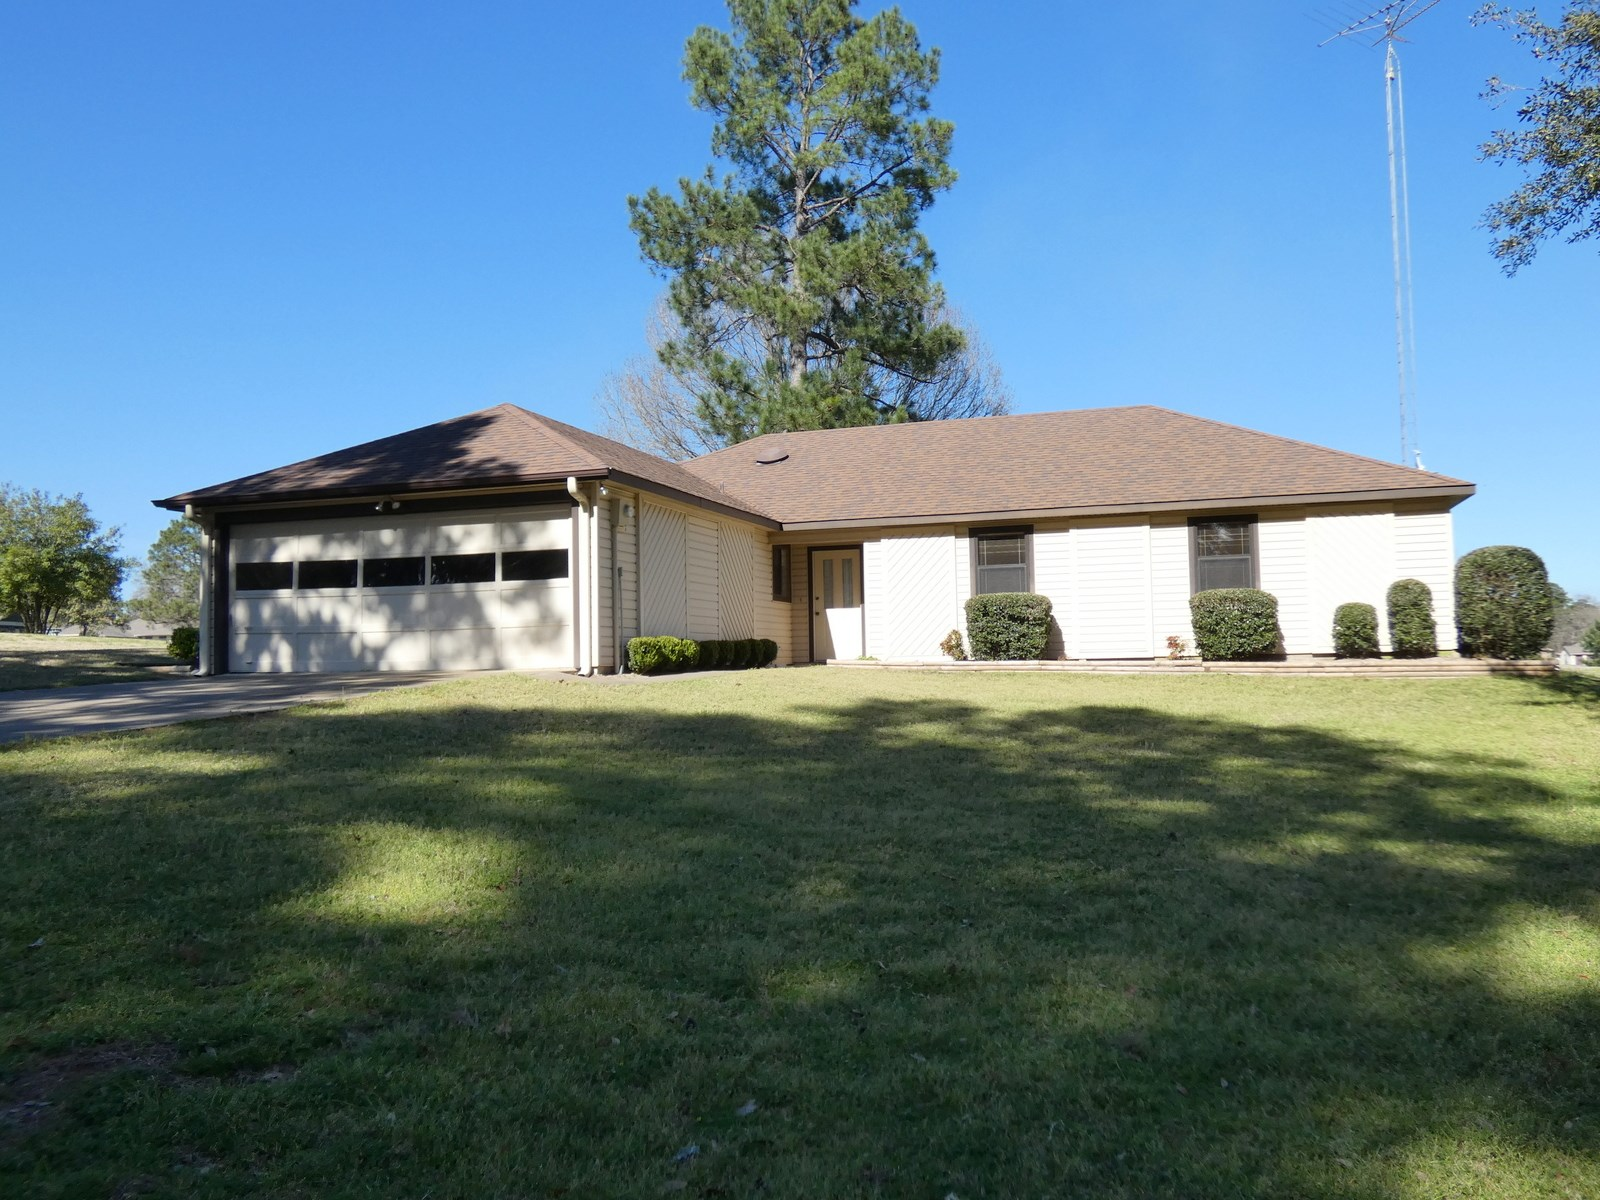 GOLF COURSE HOME - HOLLY LAKE RANCH TEXAS - WOOD COUNTY TX